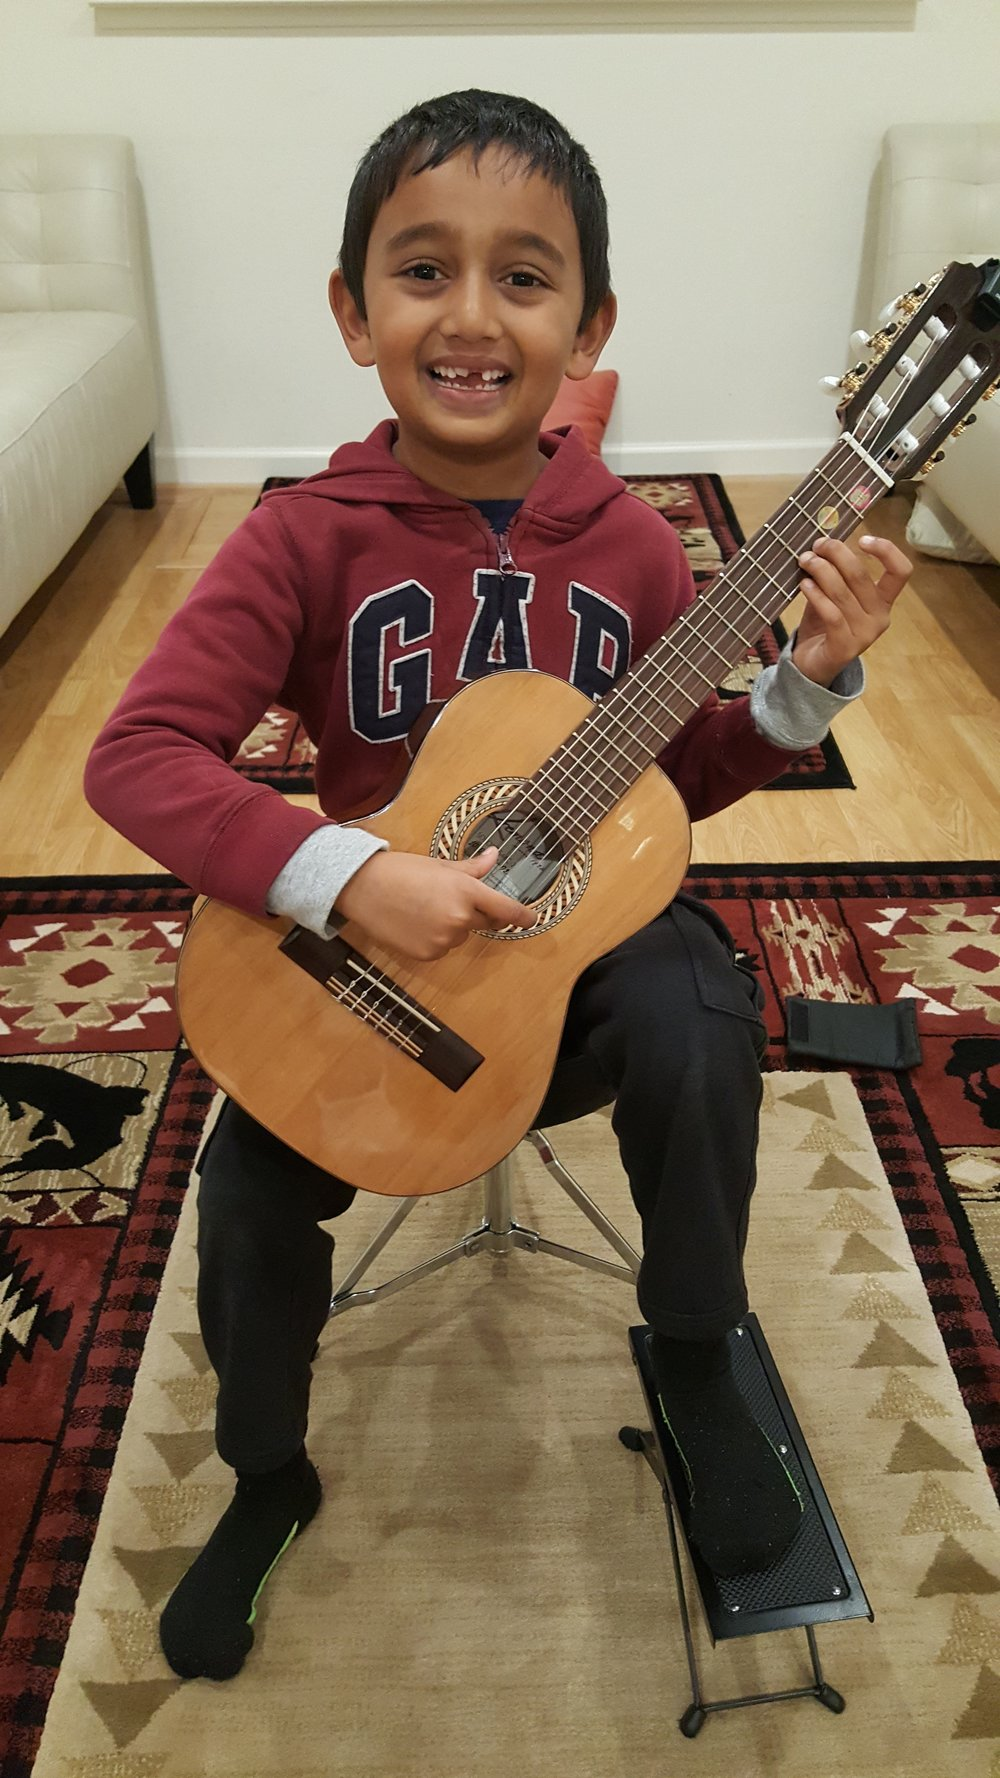 arjun playing guitar CCM